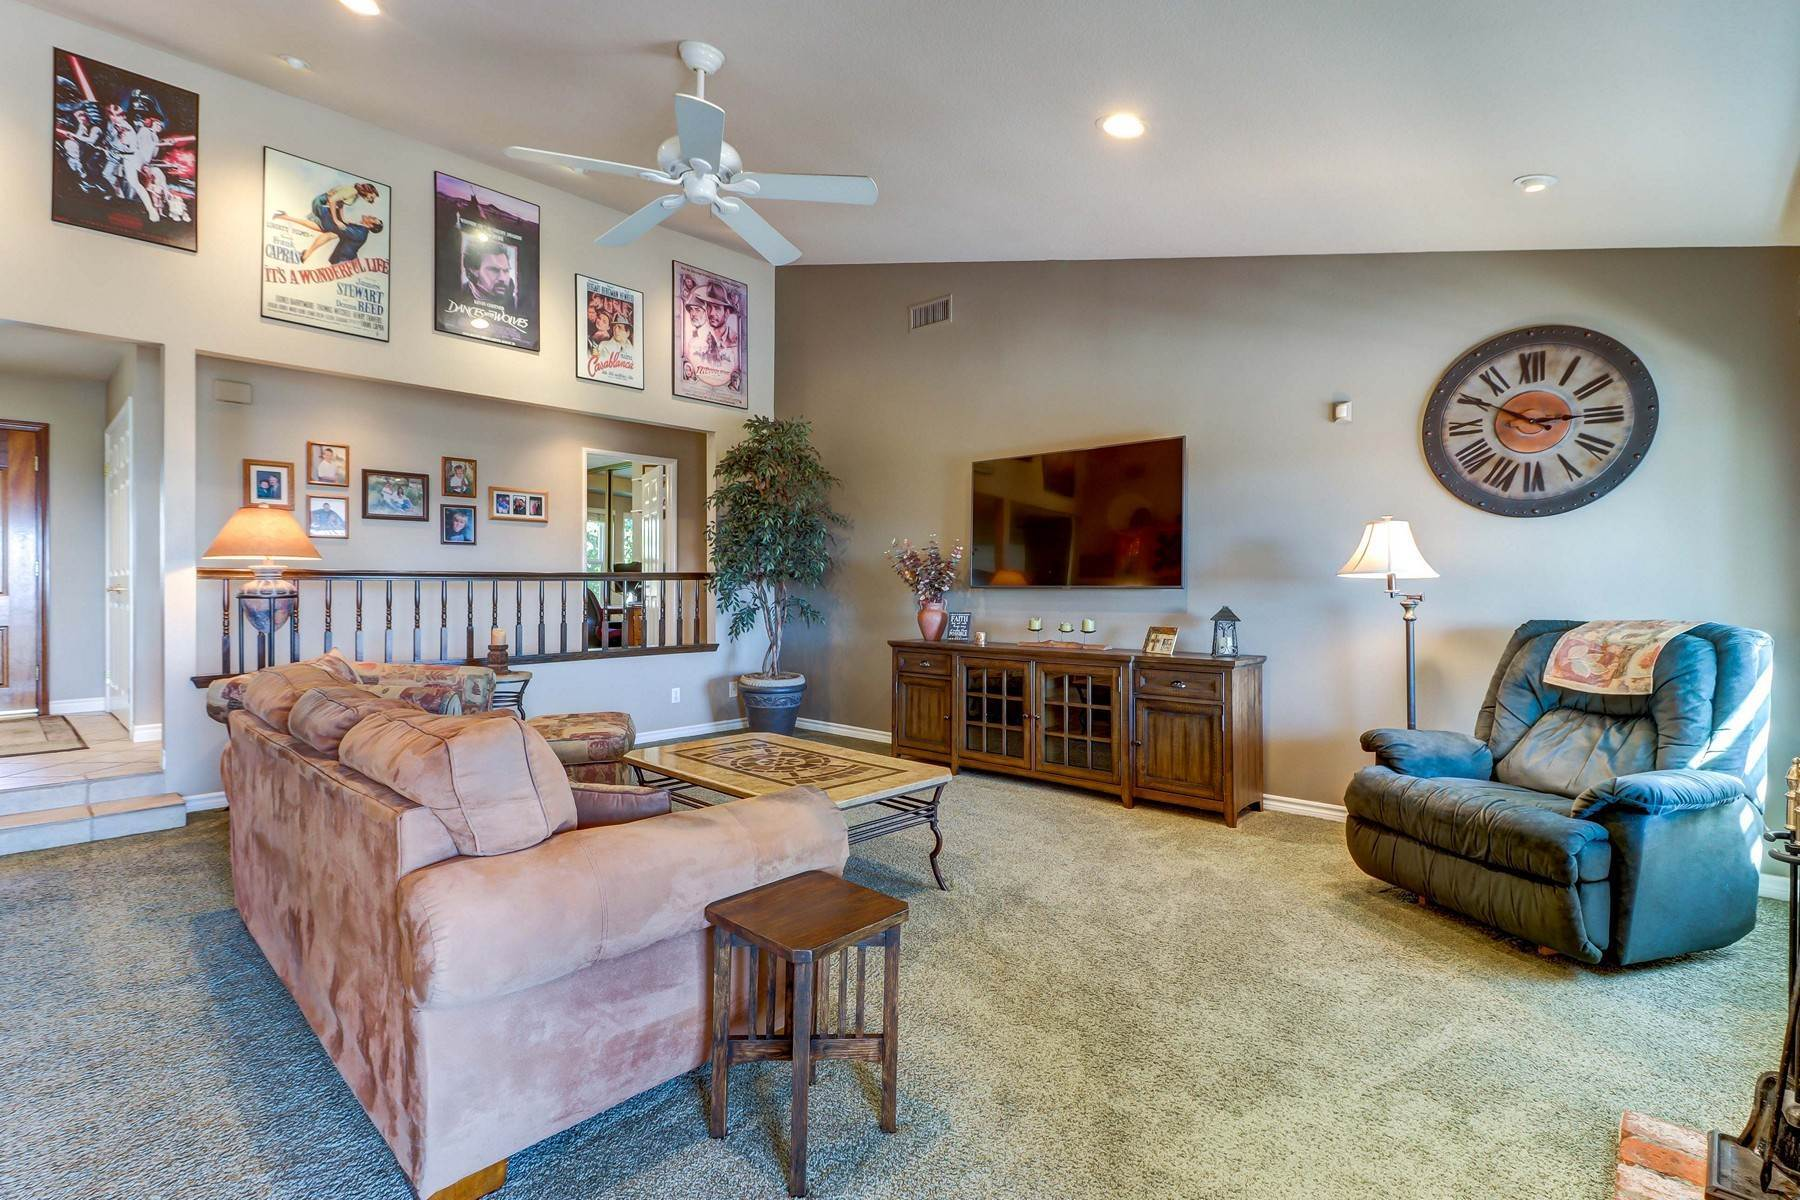 9. Single Family Homes for Sale at 10329 Vista Grove Street, Rancho Cucamonga, CA 91737 10329 Vista Grove Street Rancho Cucamonga, California 91737 United States